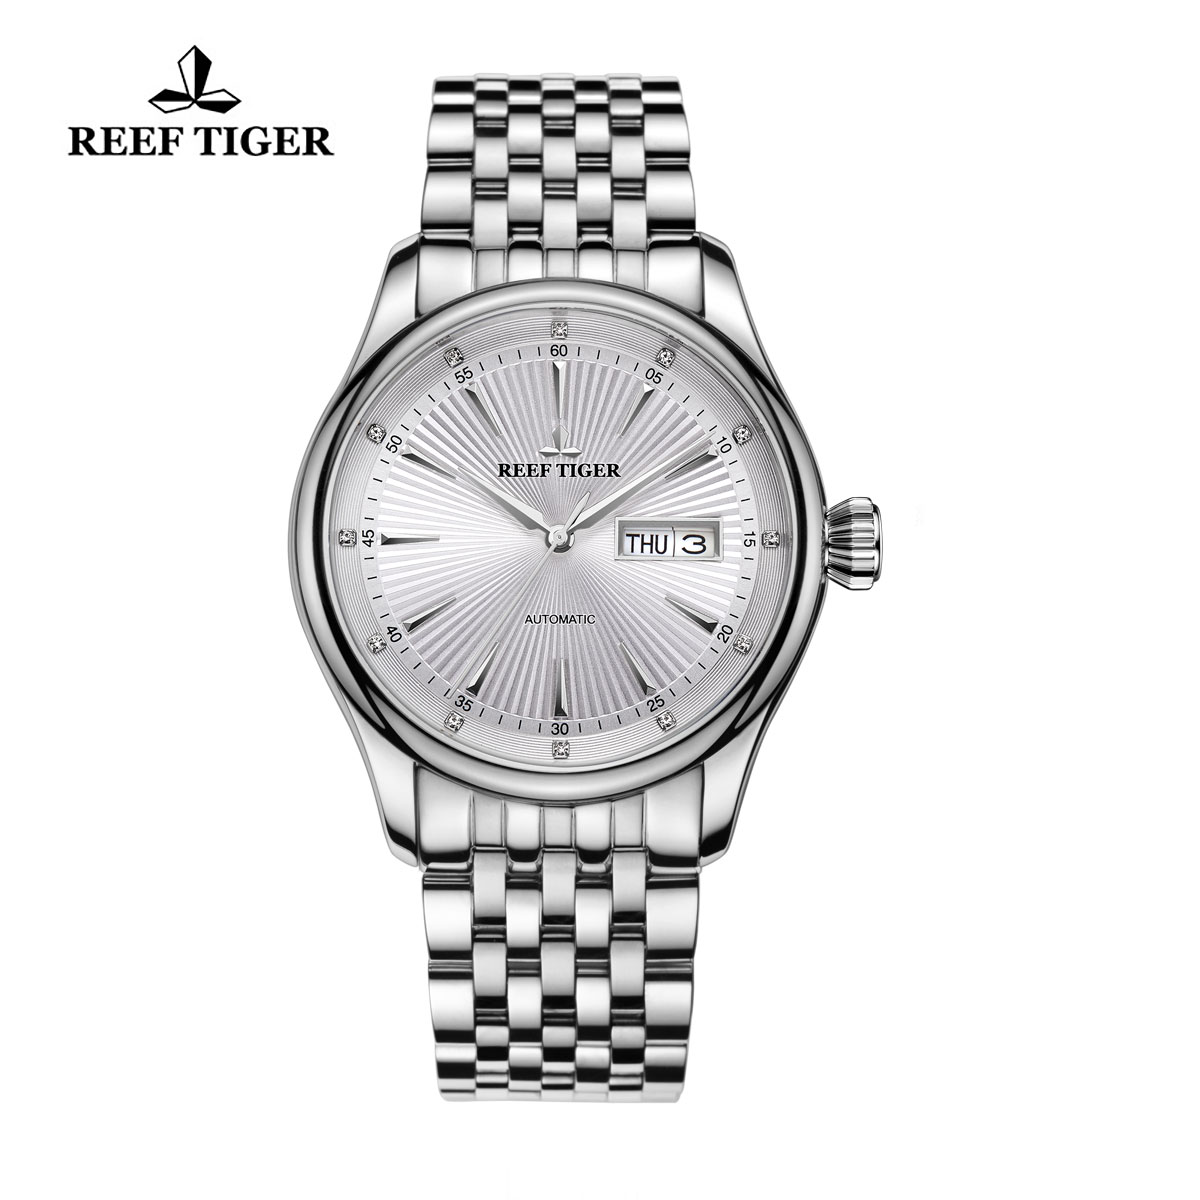 Reef Tiger Heritage II Dress Watch Automatic White Dial Steel Case RGA8232-YWY